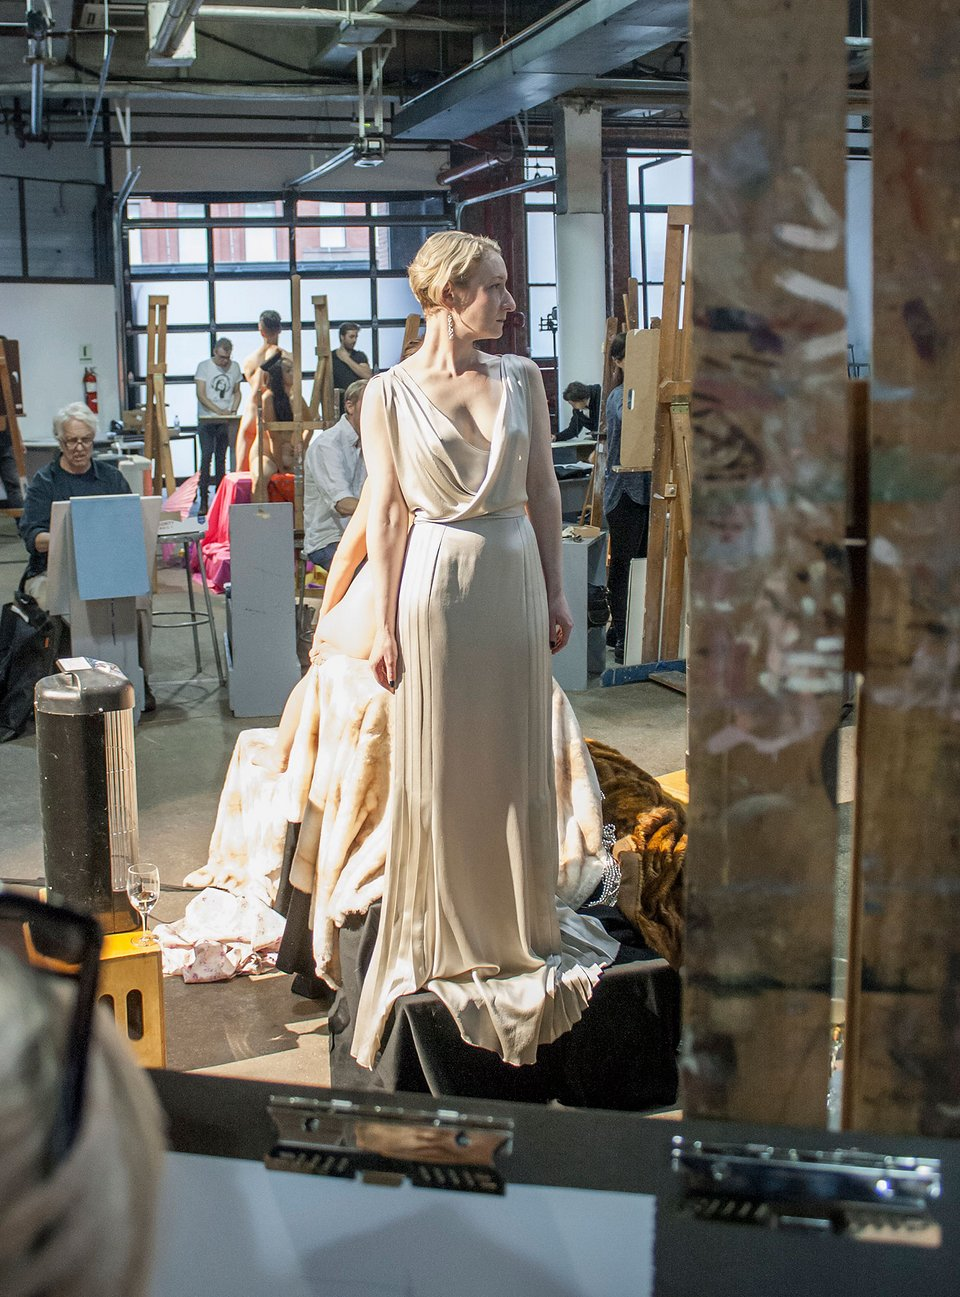 Naked With Clothes On: How It Feels to Be a Drawing Model